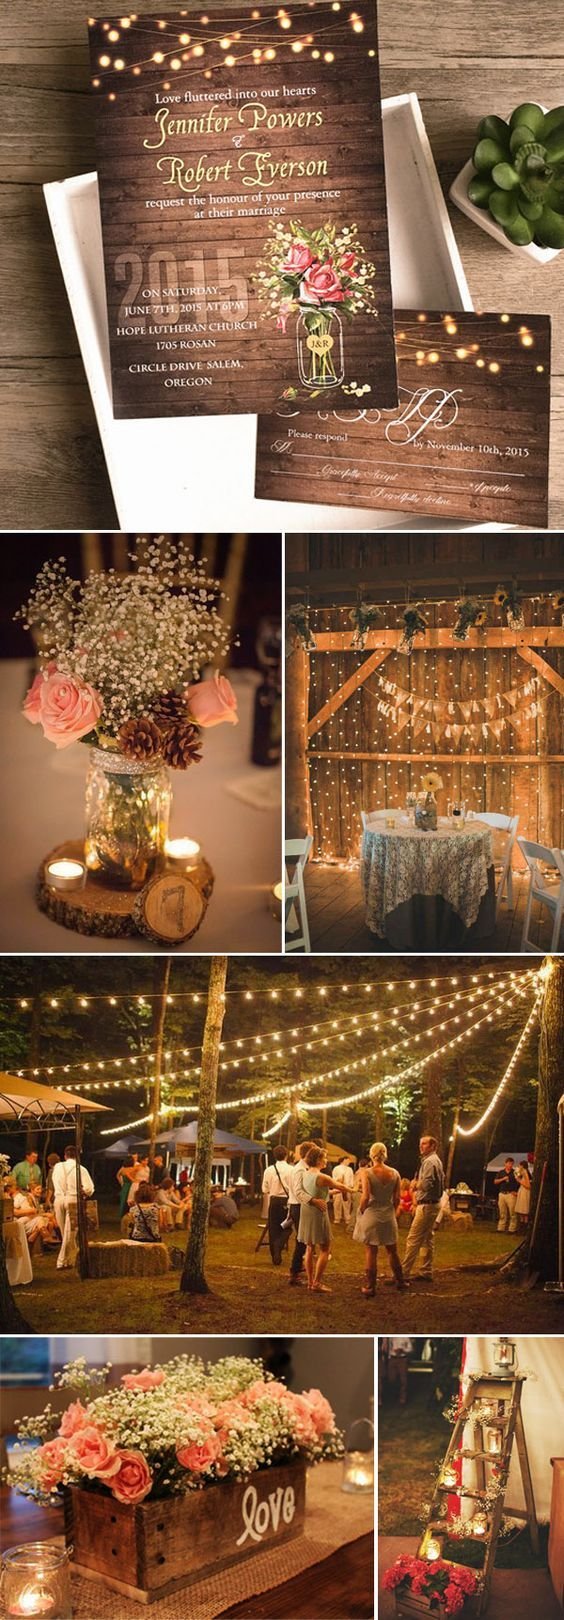 Italian bistro cafe string light rental for wedding reception in - Best 25 Wedding String Lights Ideas On Pinterest Reception Backdrop Alternative Wedding Venue And Wedding Background